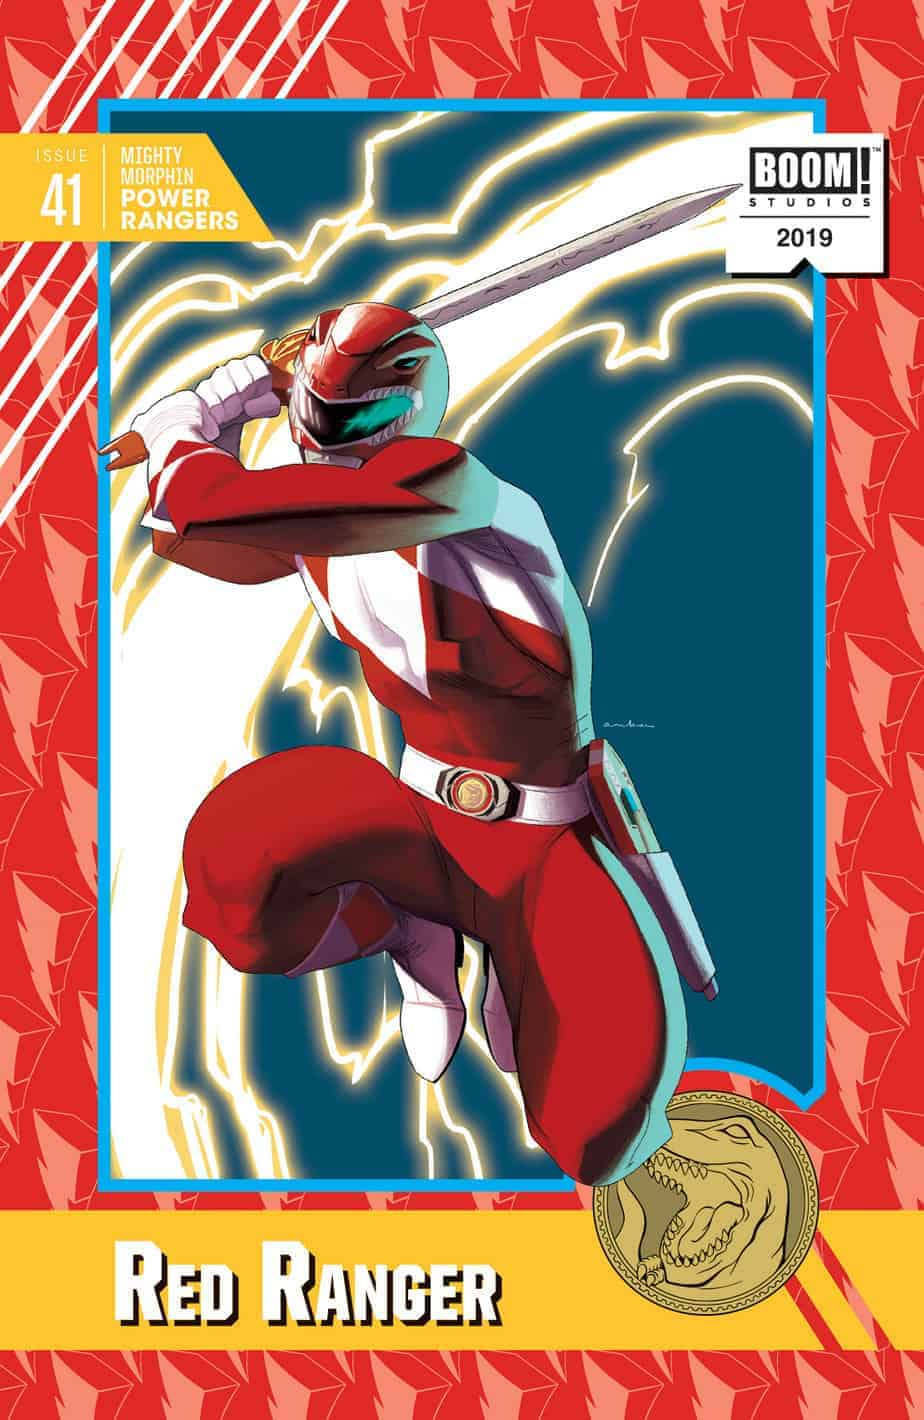 Mighty Morphin Power Rangers #41 - Trading Card Variant